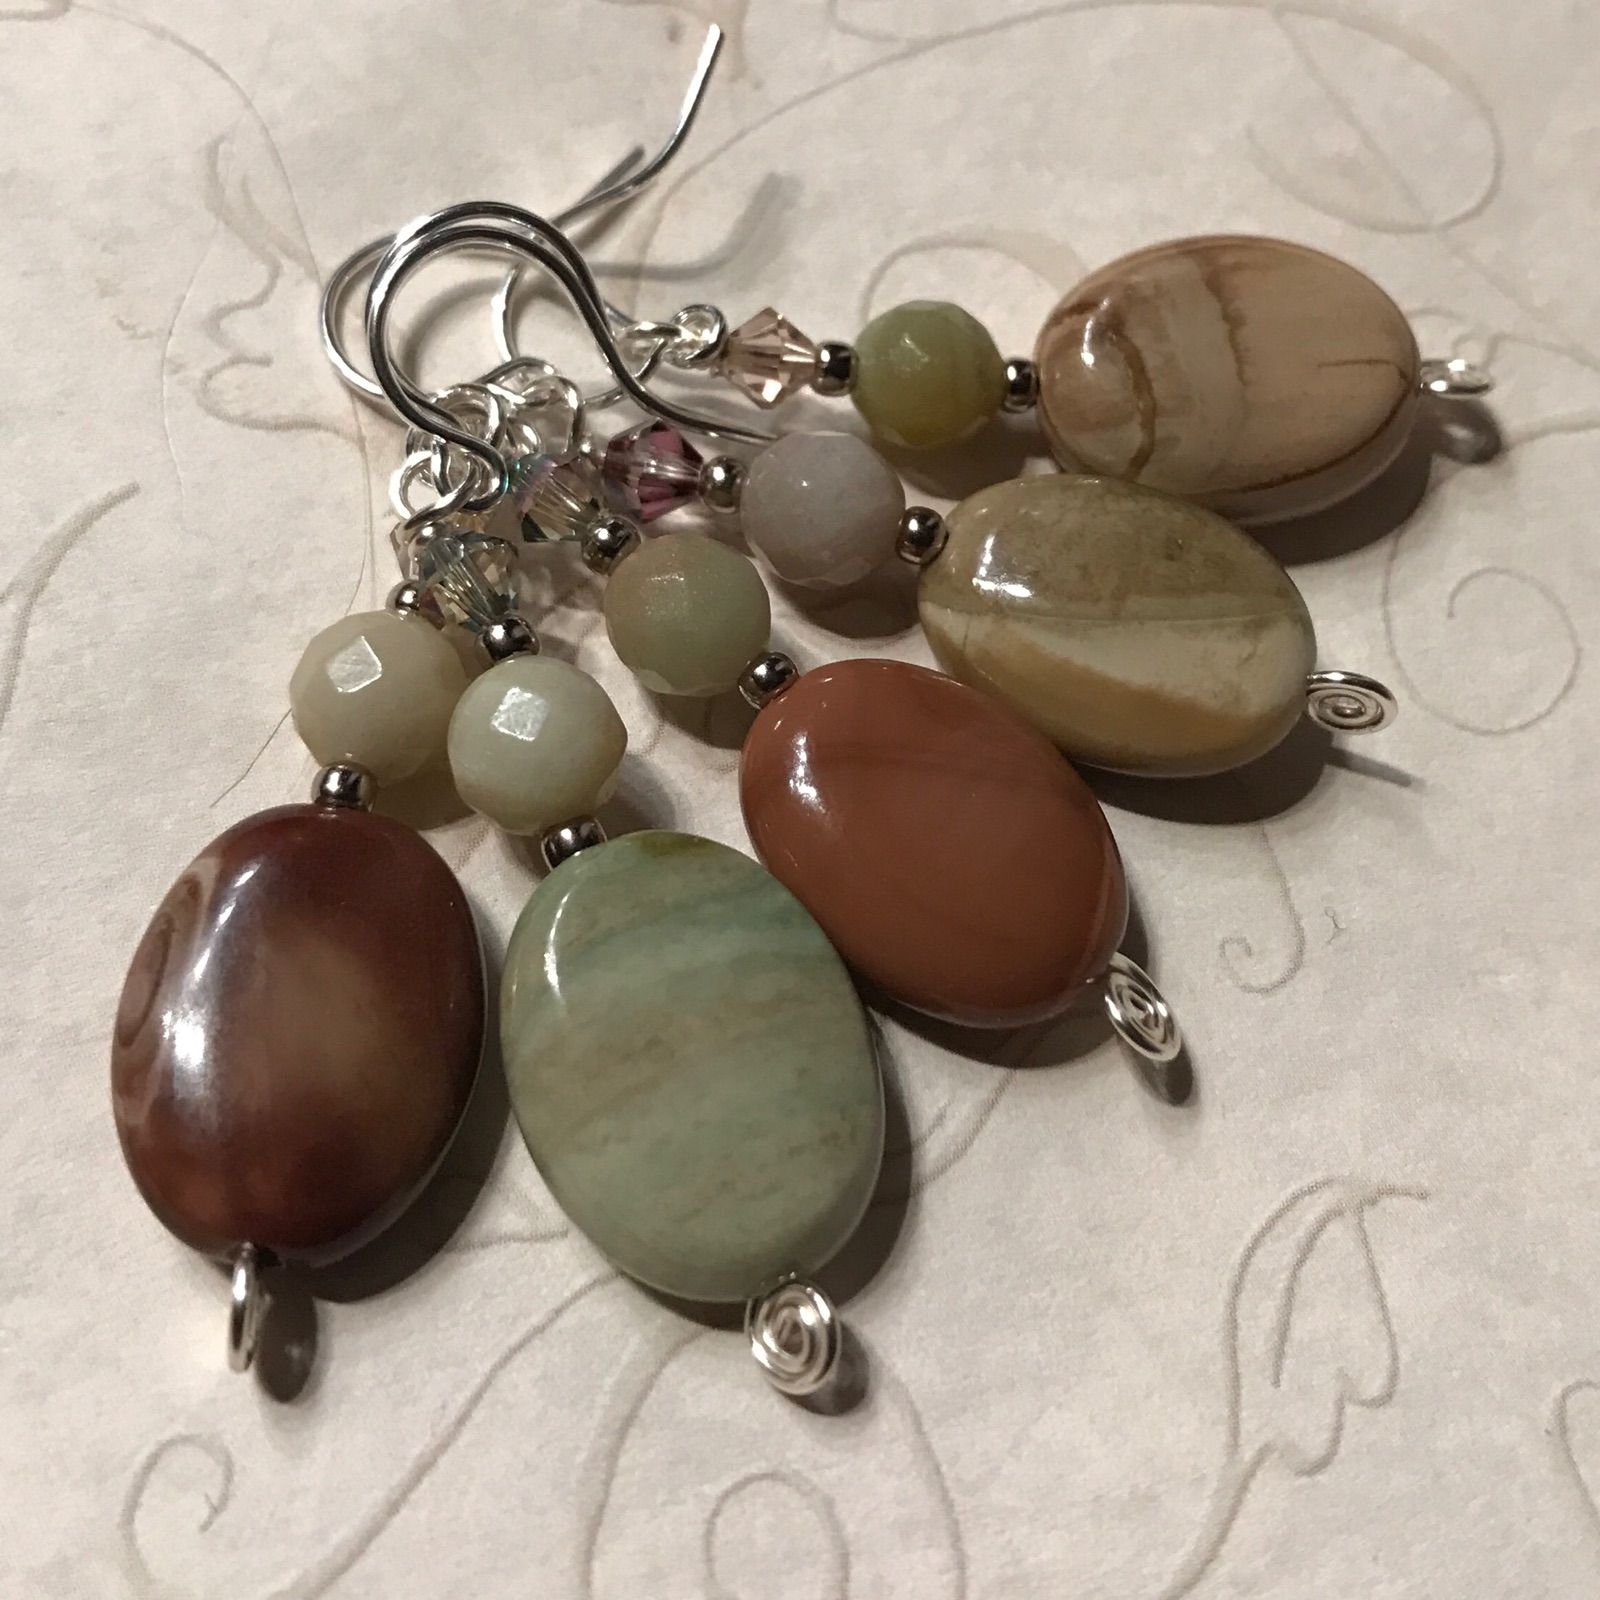 The Wilderness is Waiting #4 A set of five earrings: imperial jasper, amazonite, metal beads, silver wire, sterling silver earwires.   https://nemb.ly/p/H1xmlv4ag